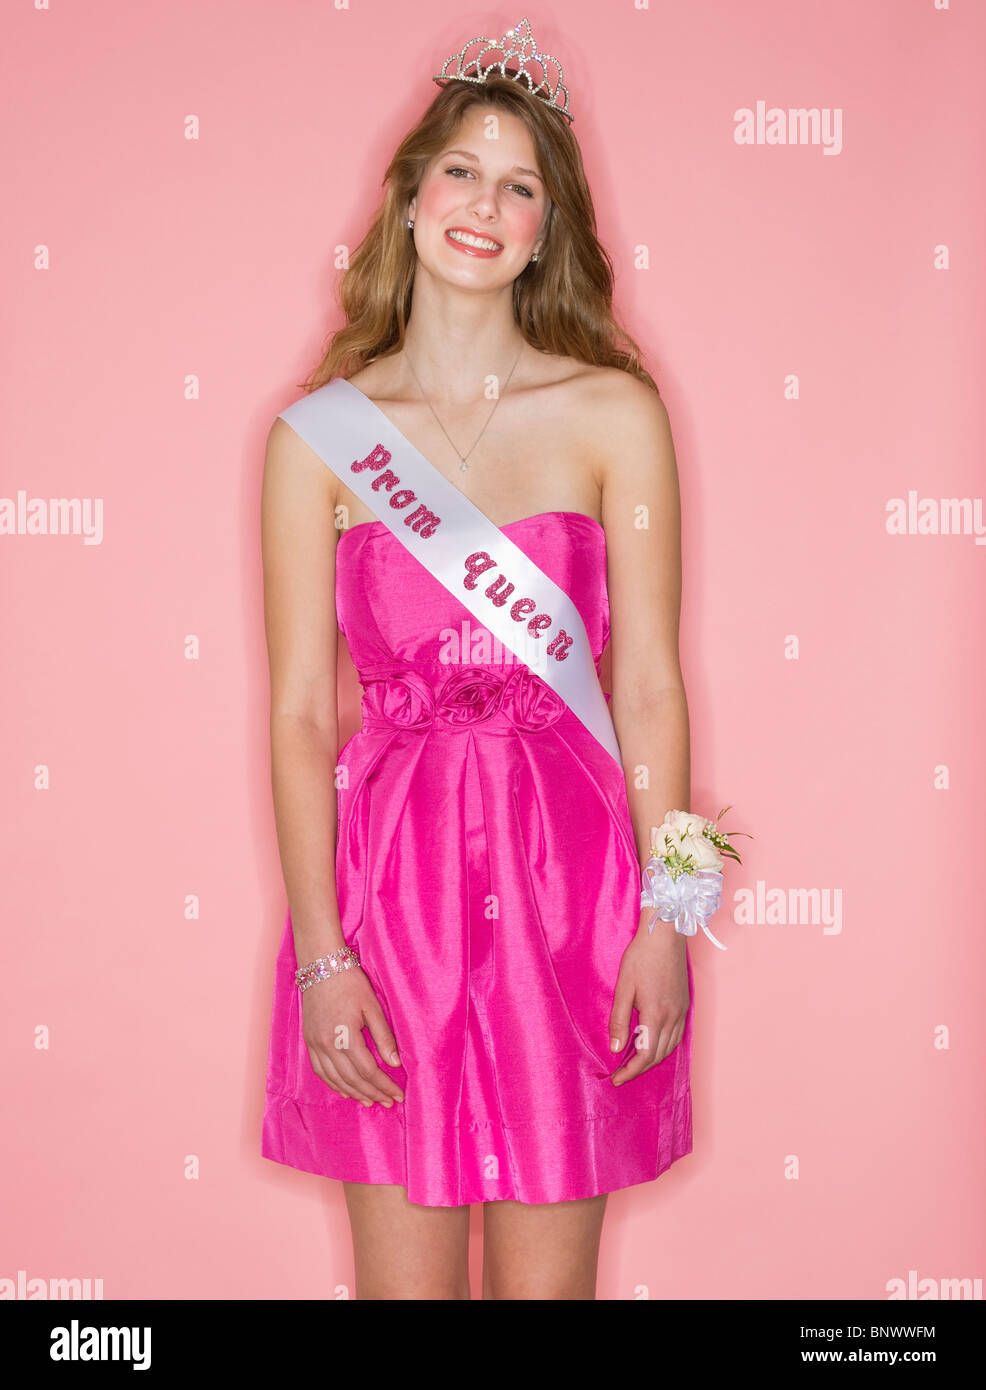 Prom Queen Stock Photos & Prom Queen Stock Images - Alamy